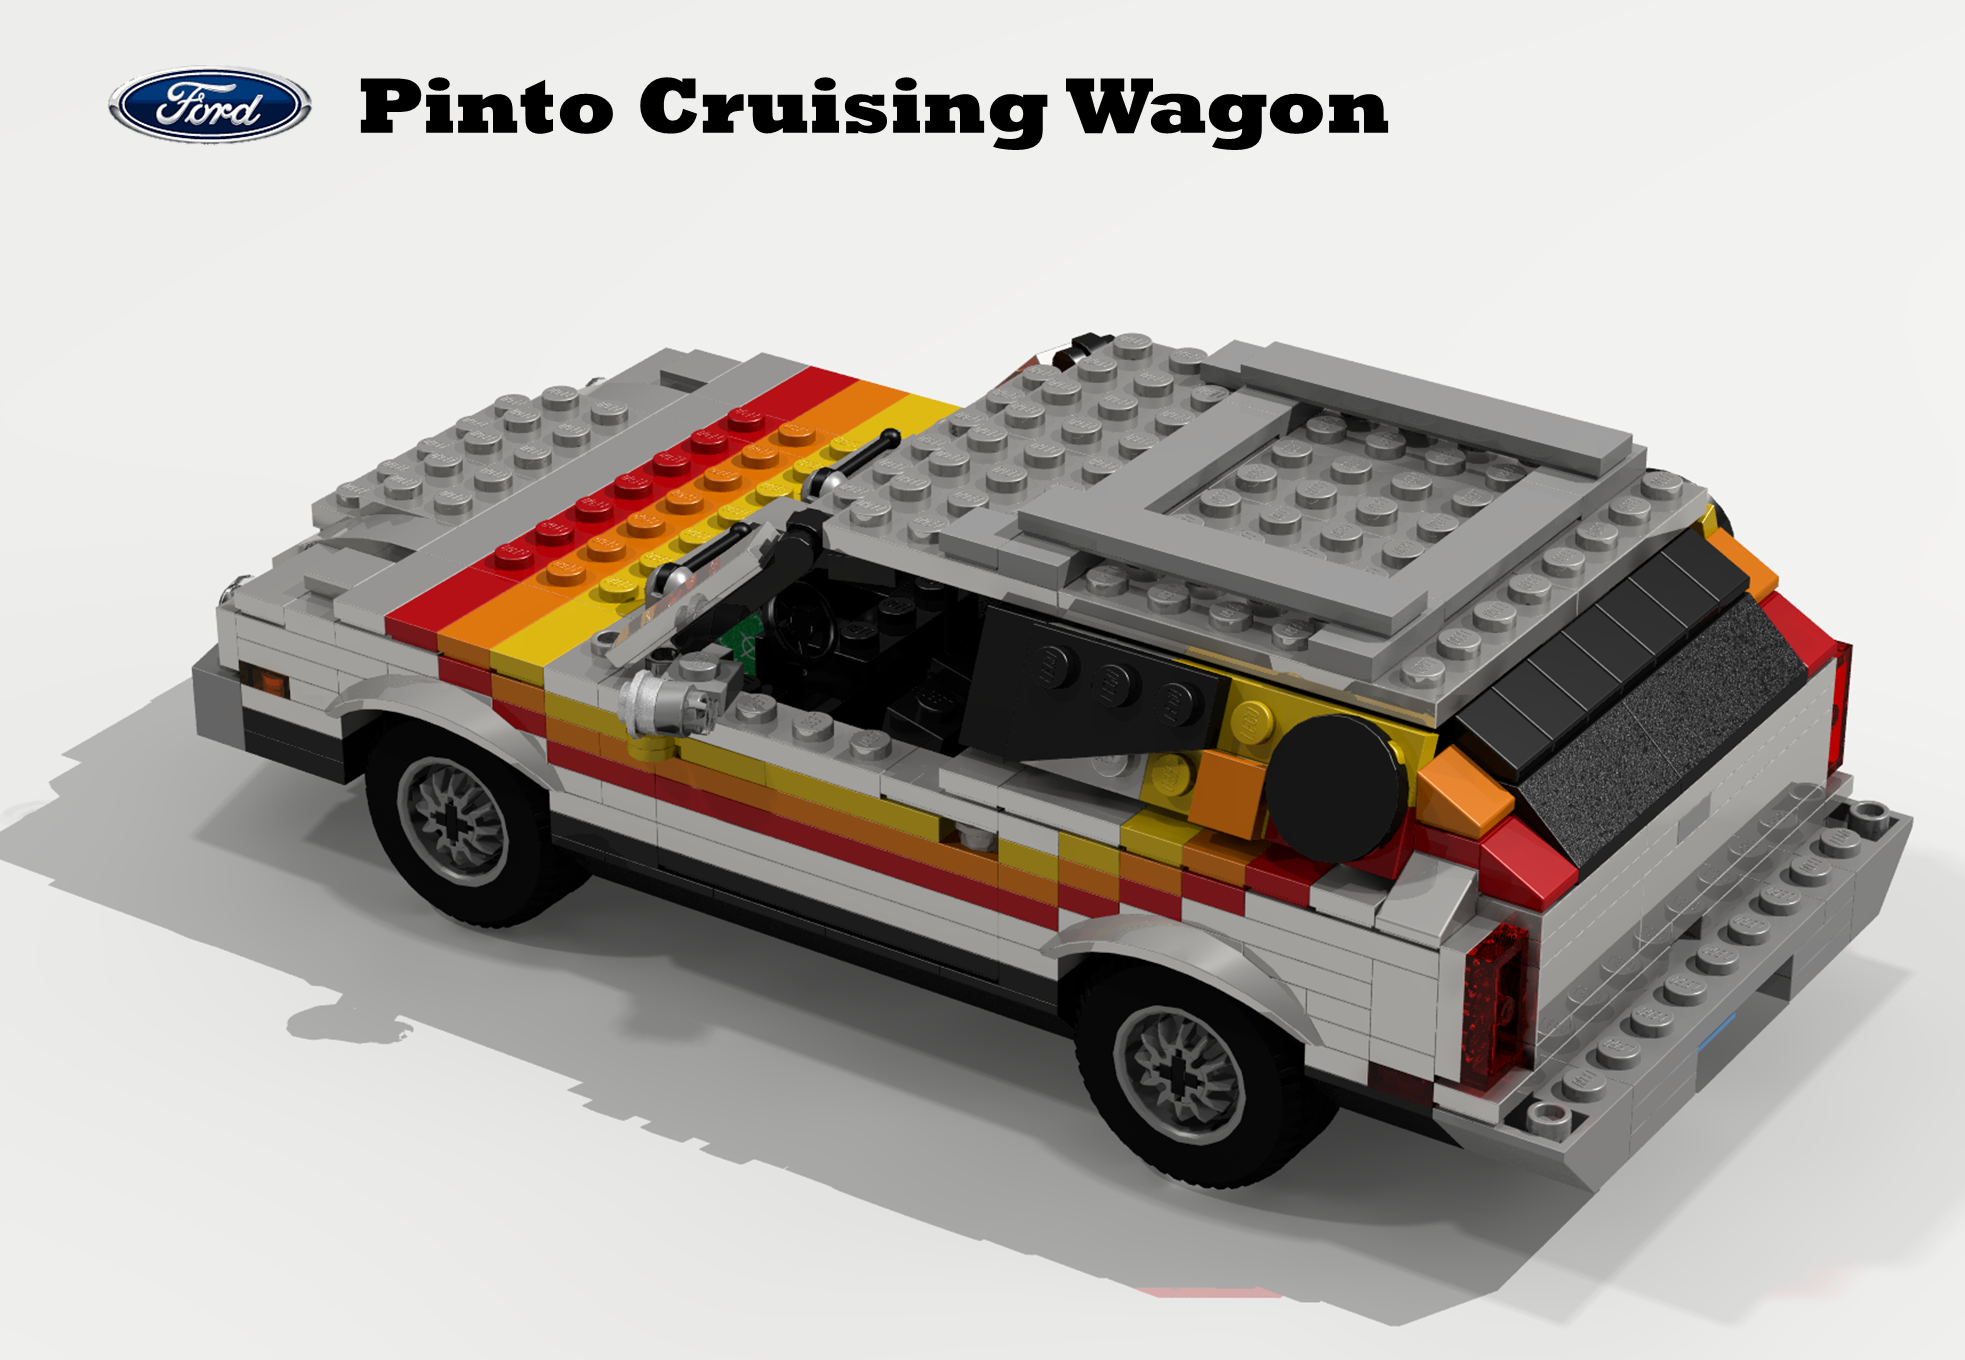 ford_pinto_cruising_wagon_06.png